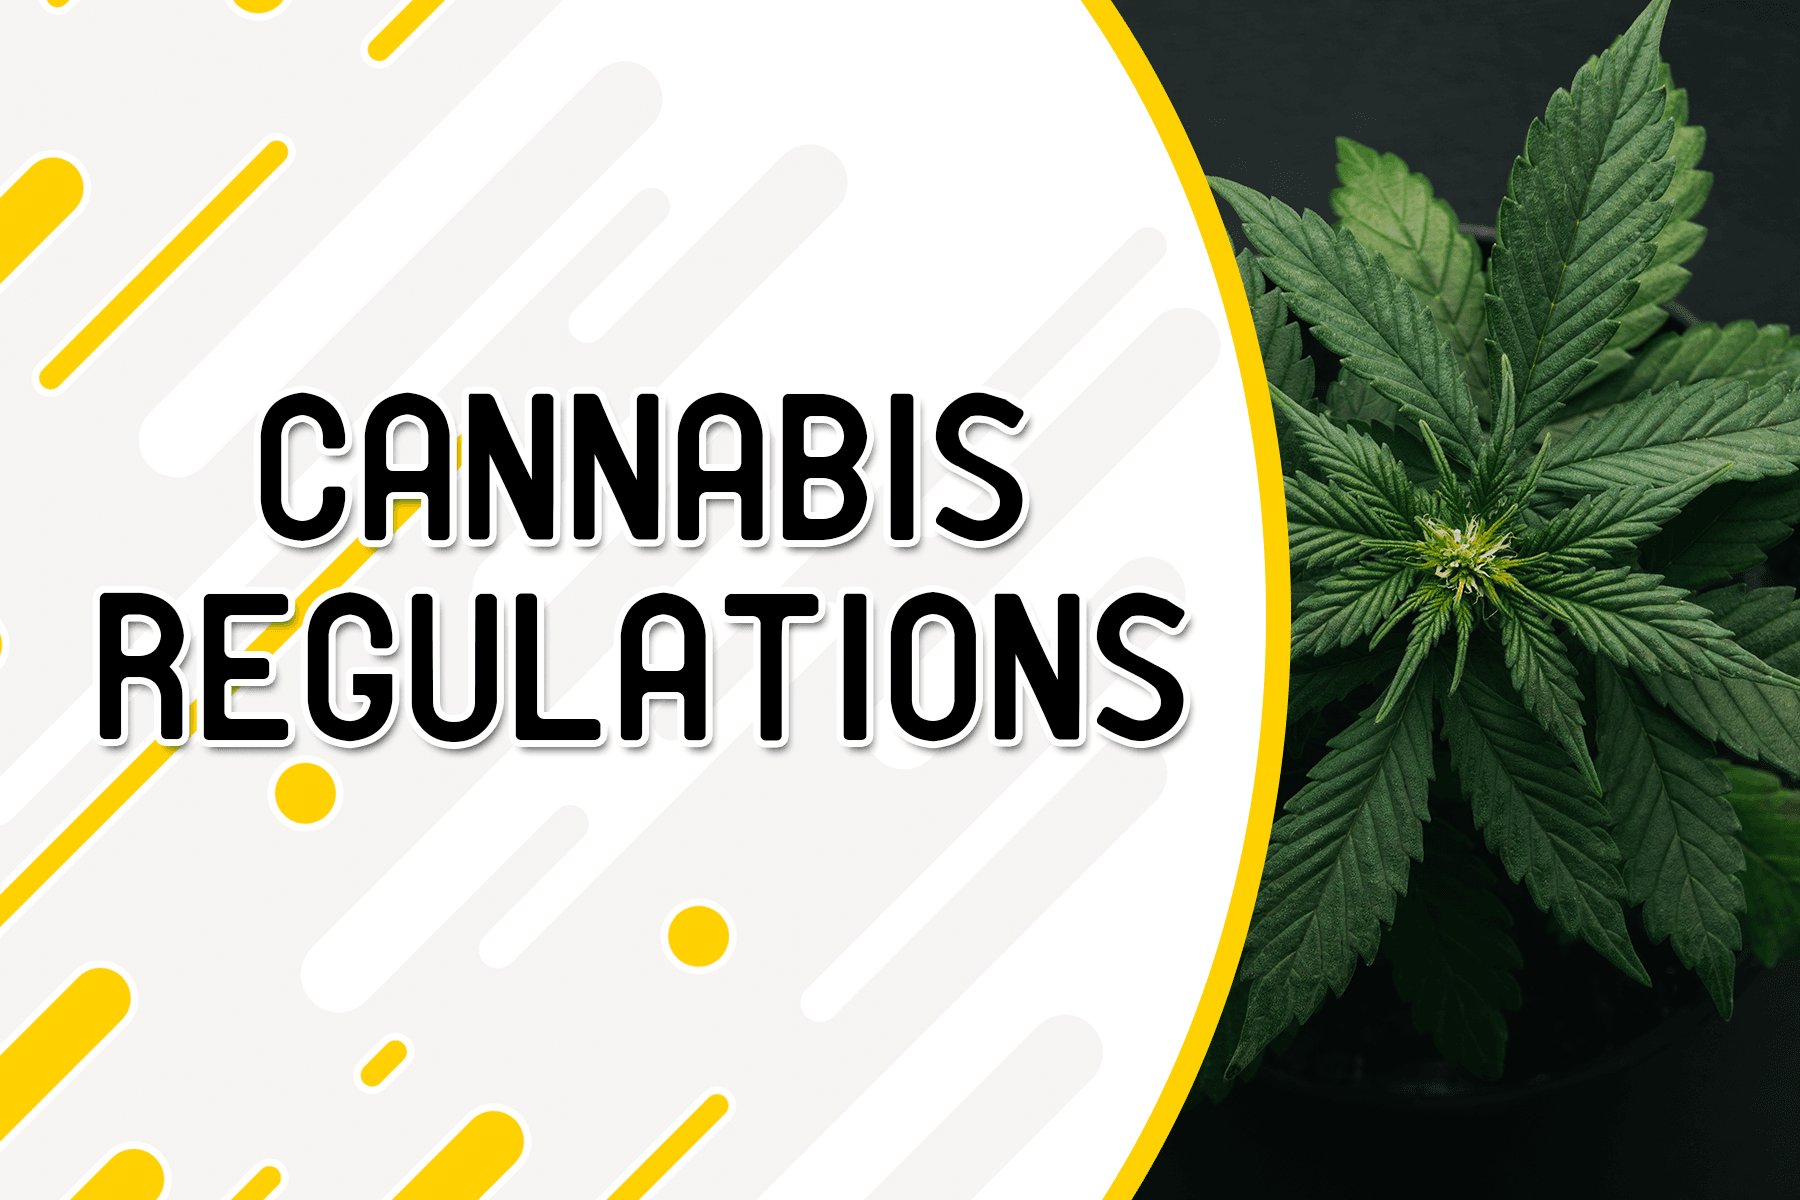 Cannabis-Regulations-Website-Header